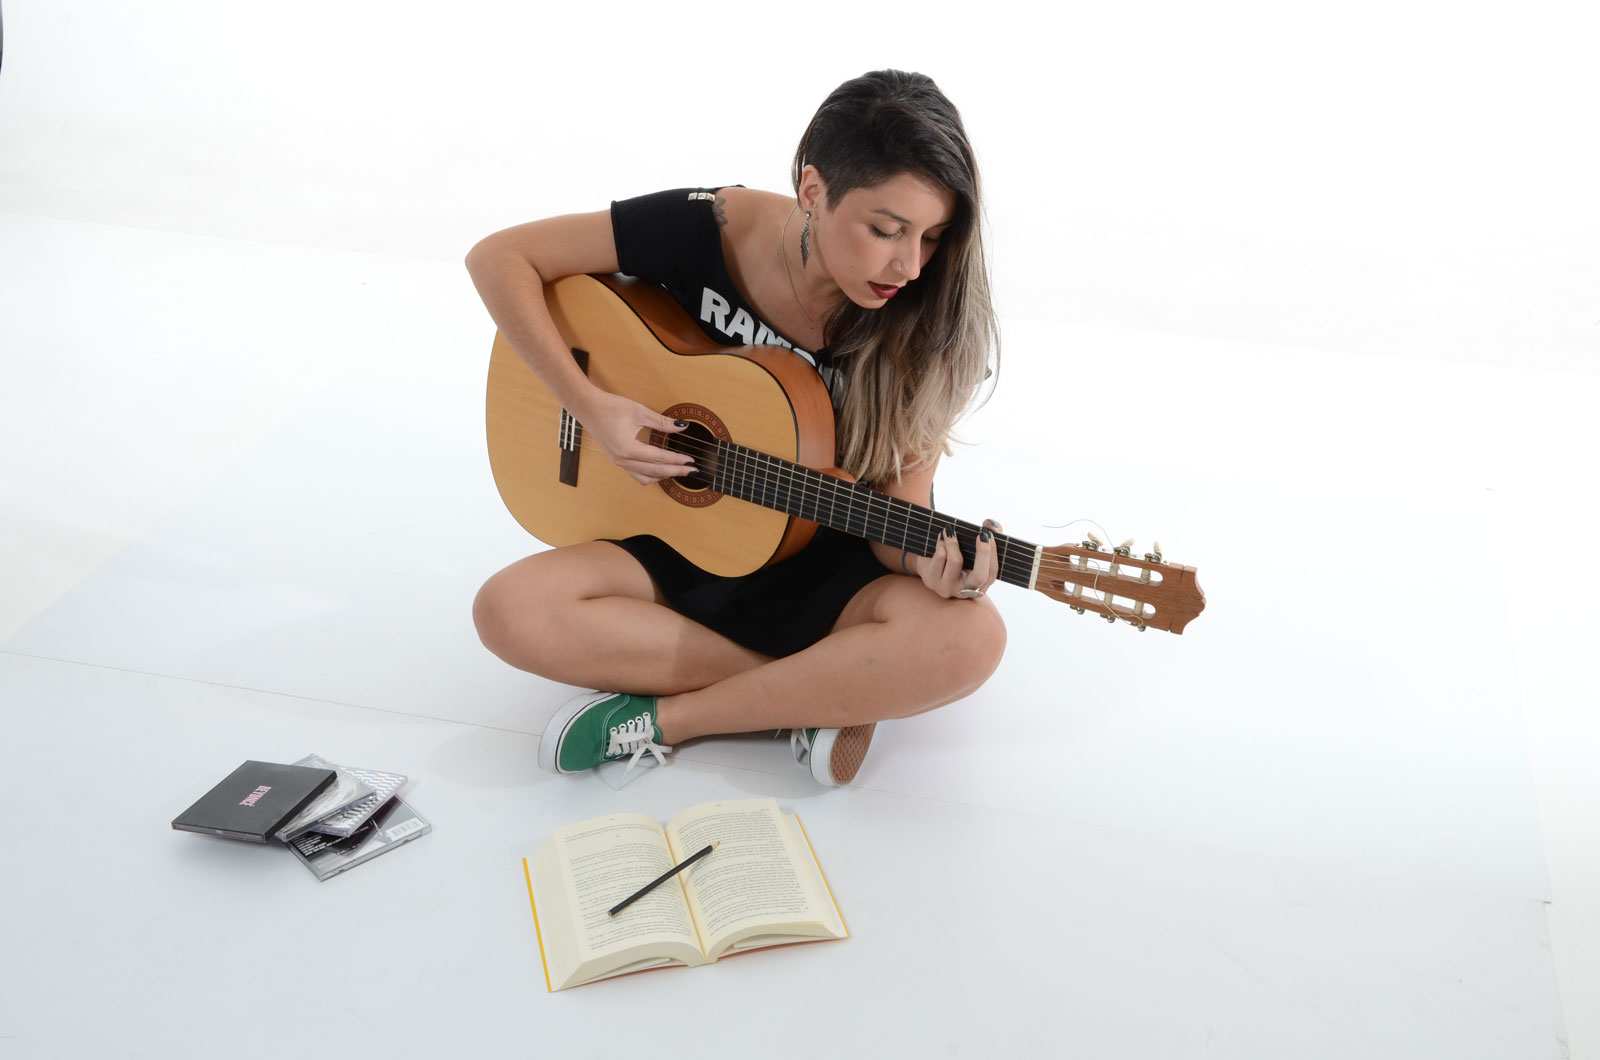 Woman Playing Guitar | Top 6 Milestones To Shoot For When Learning To Play Guitar